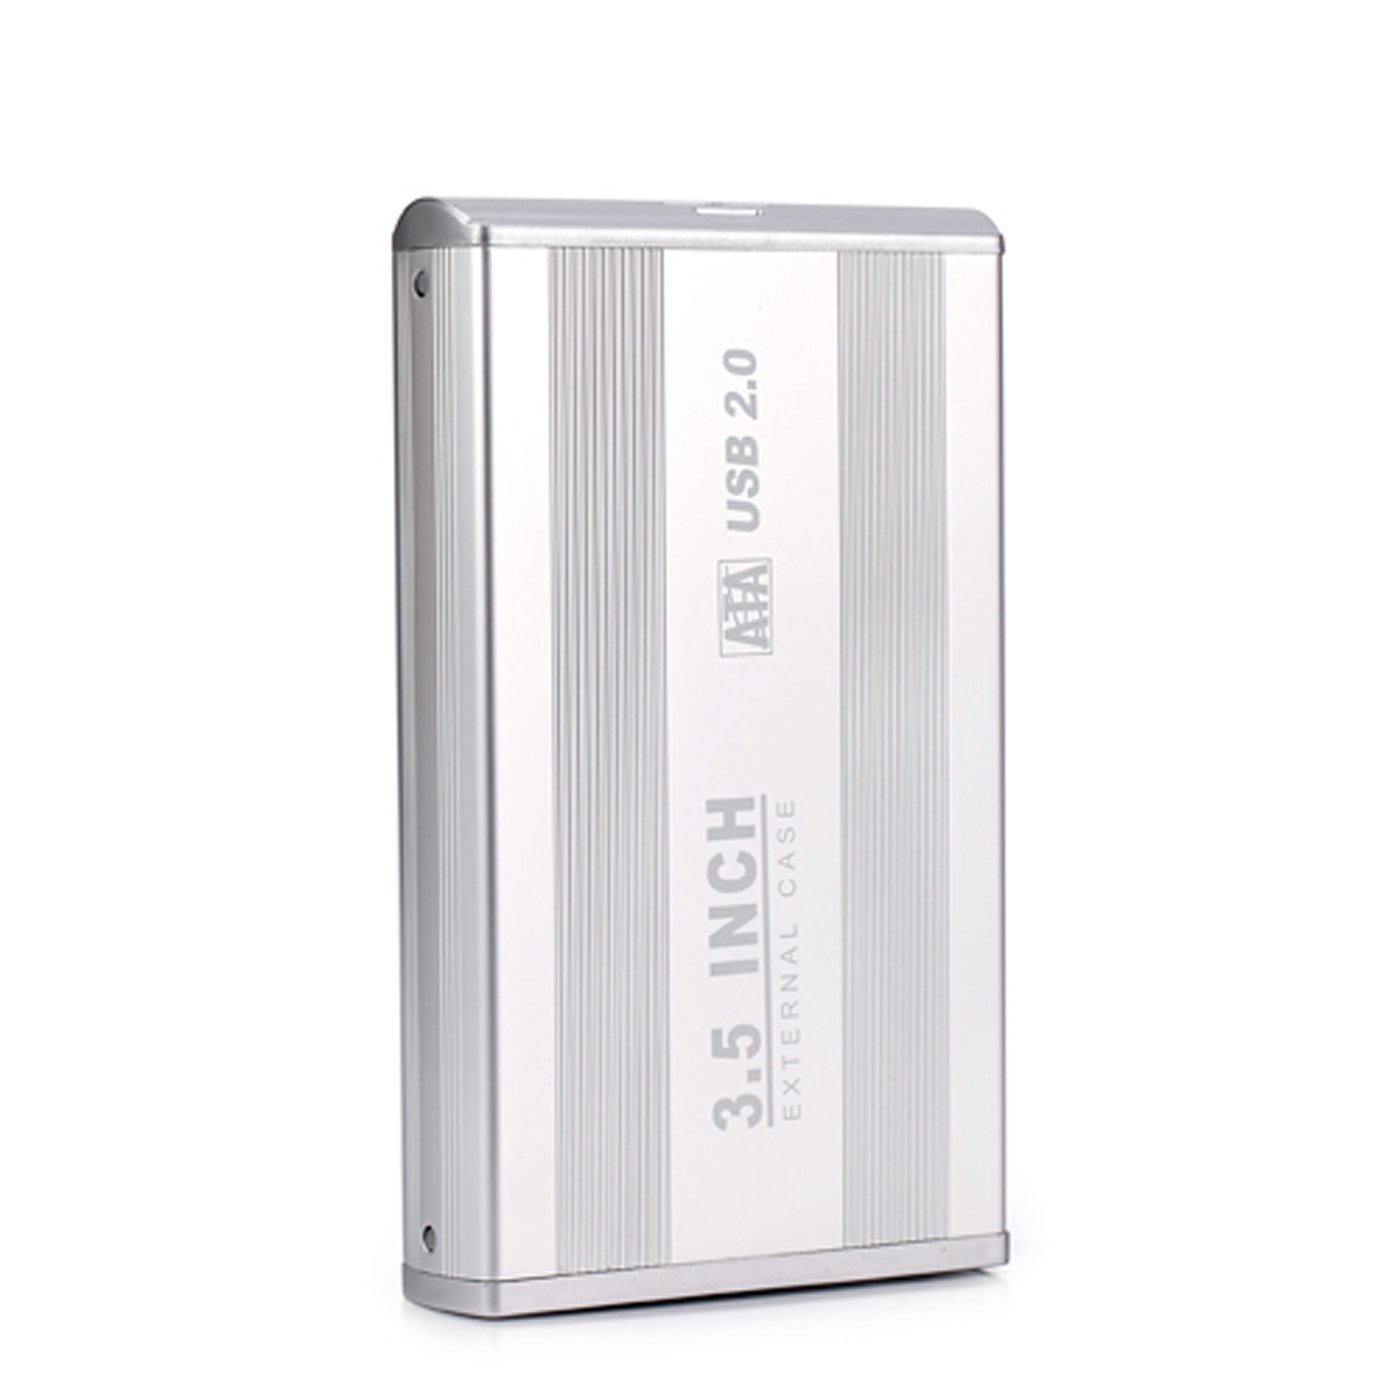 HDE 3.5 Inch SATA Hard Drive Case USB 2.0 Powered External Aluminum Enclosure Silver Finish